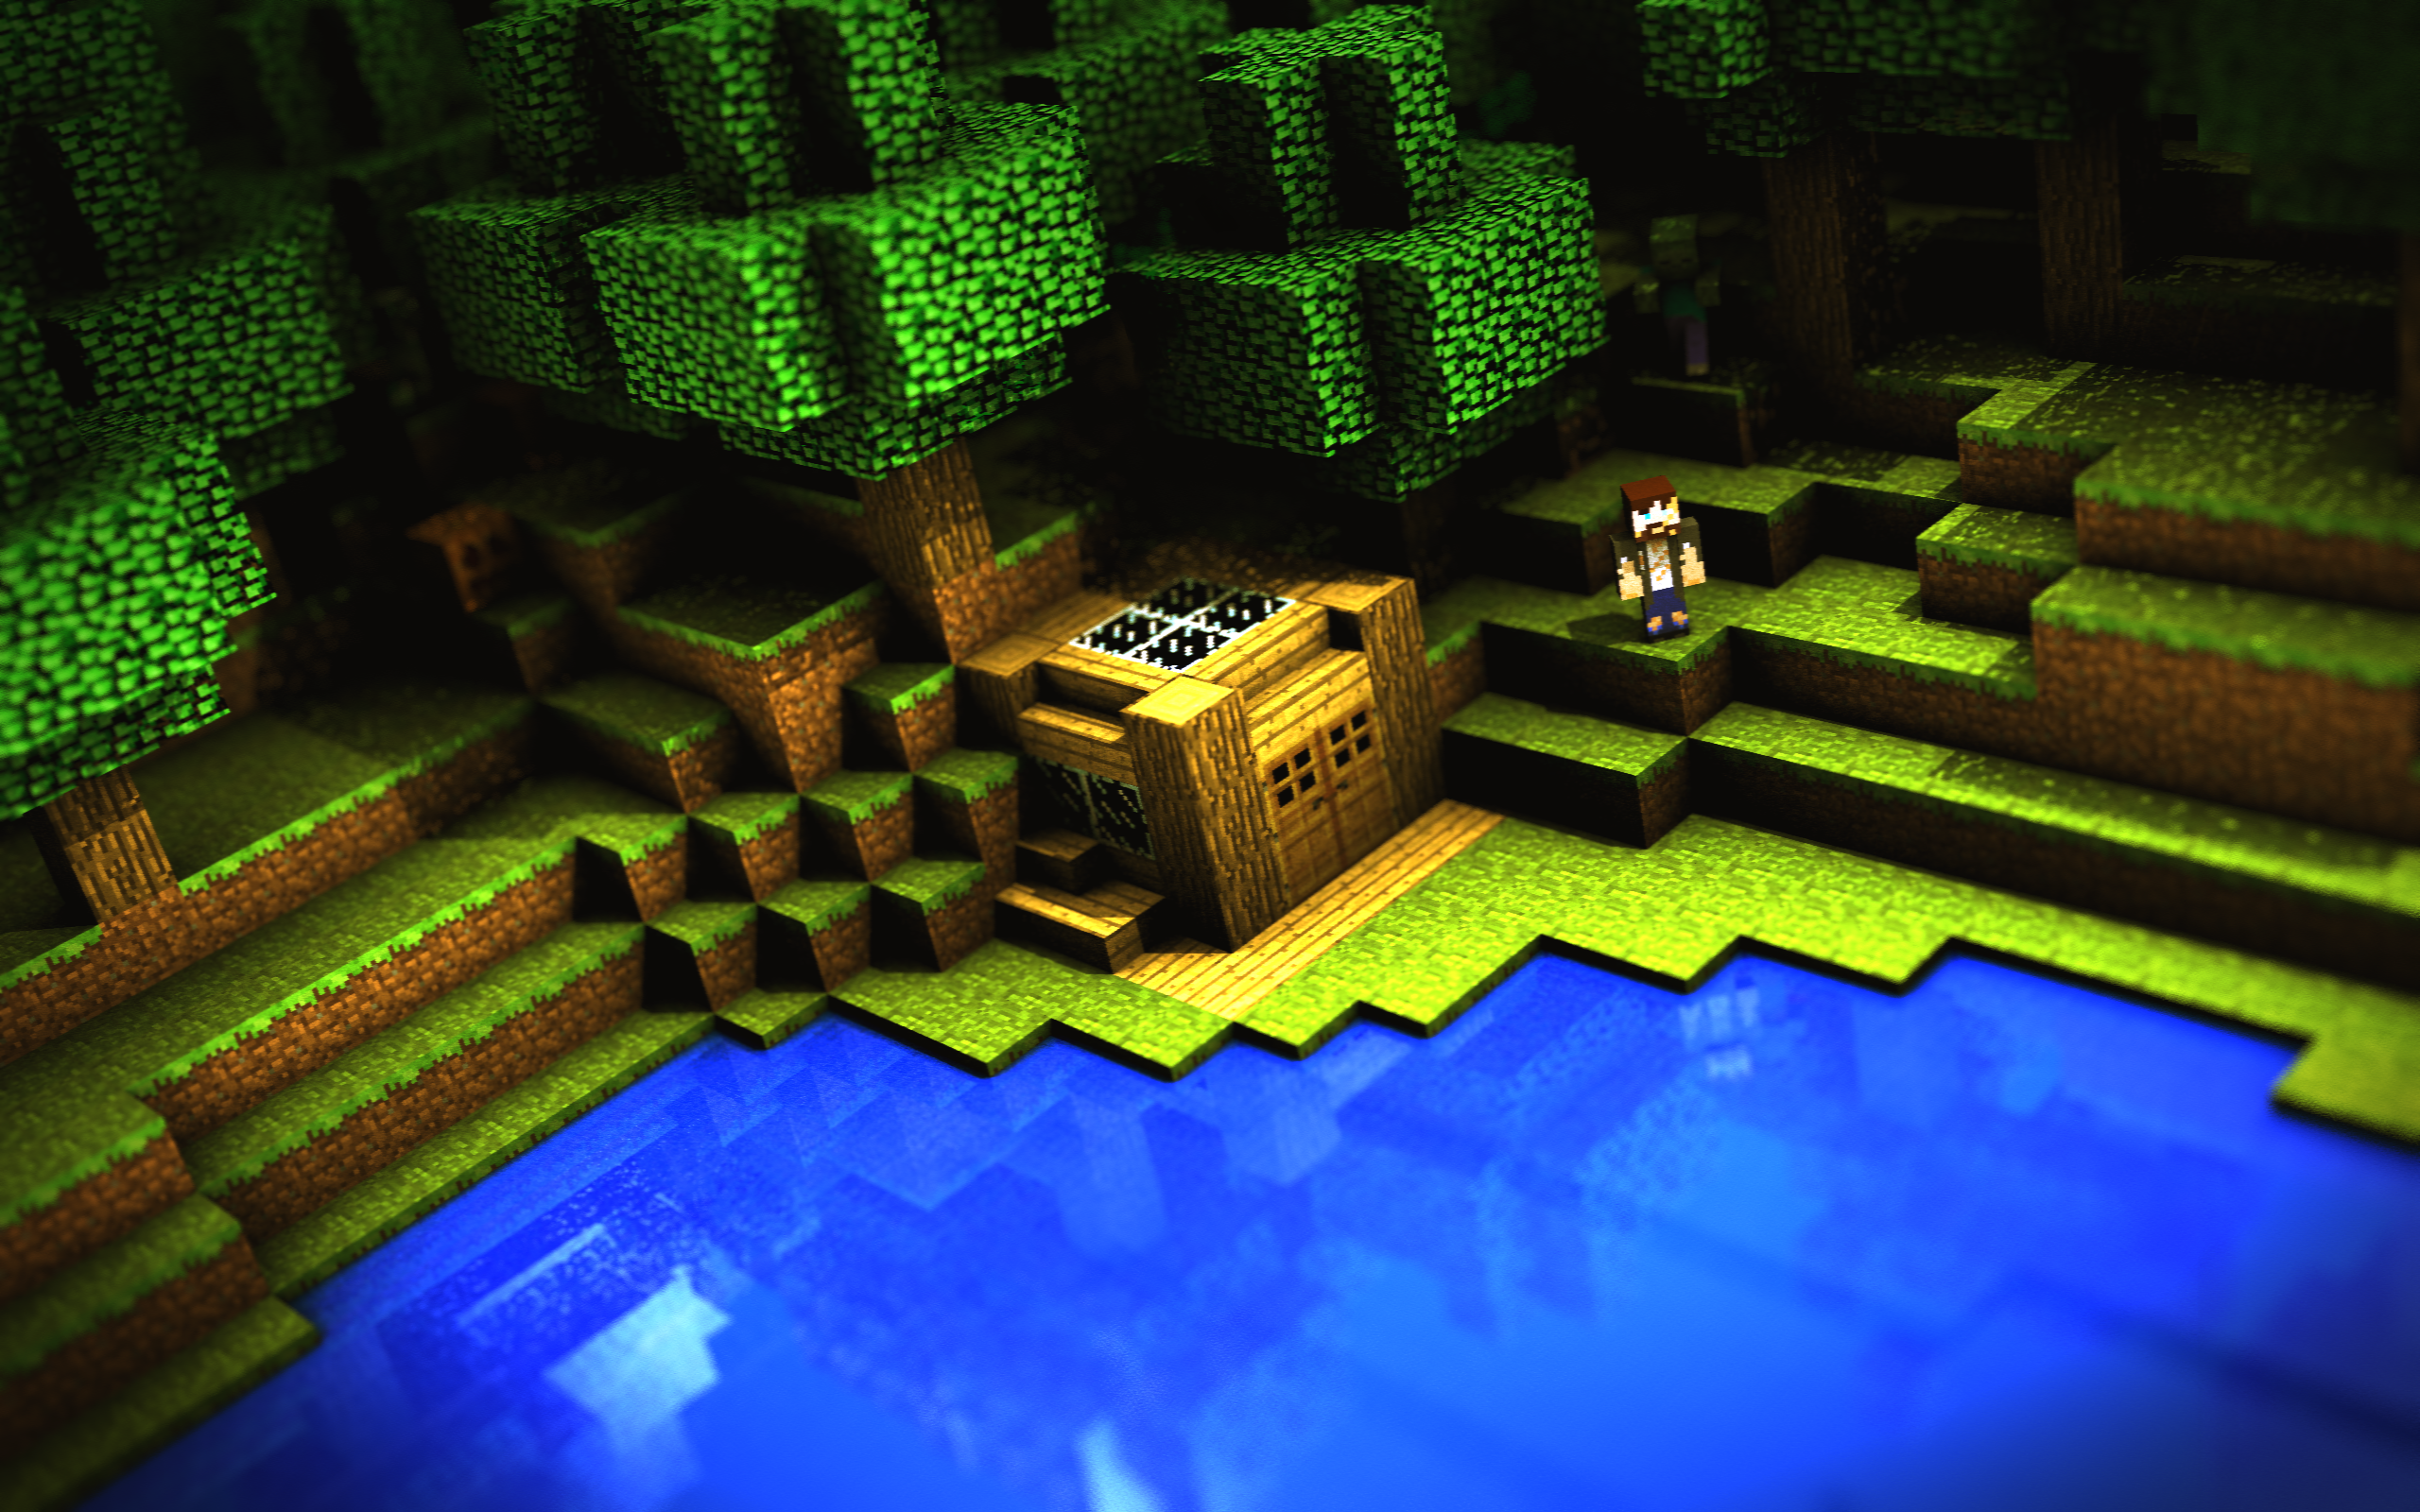 Amazing Wallpaper Minecraft Quote - f45210b8b9c1153c09a7f584eeeadce9  Photograph_895677.png